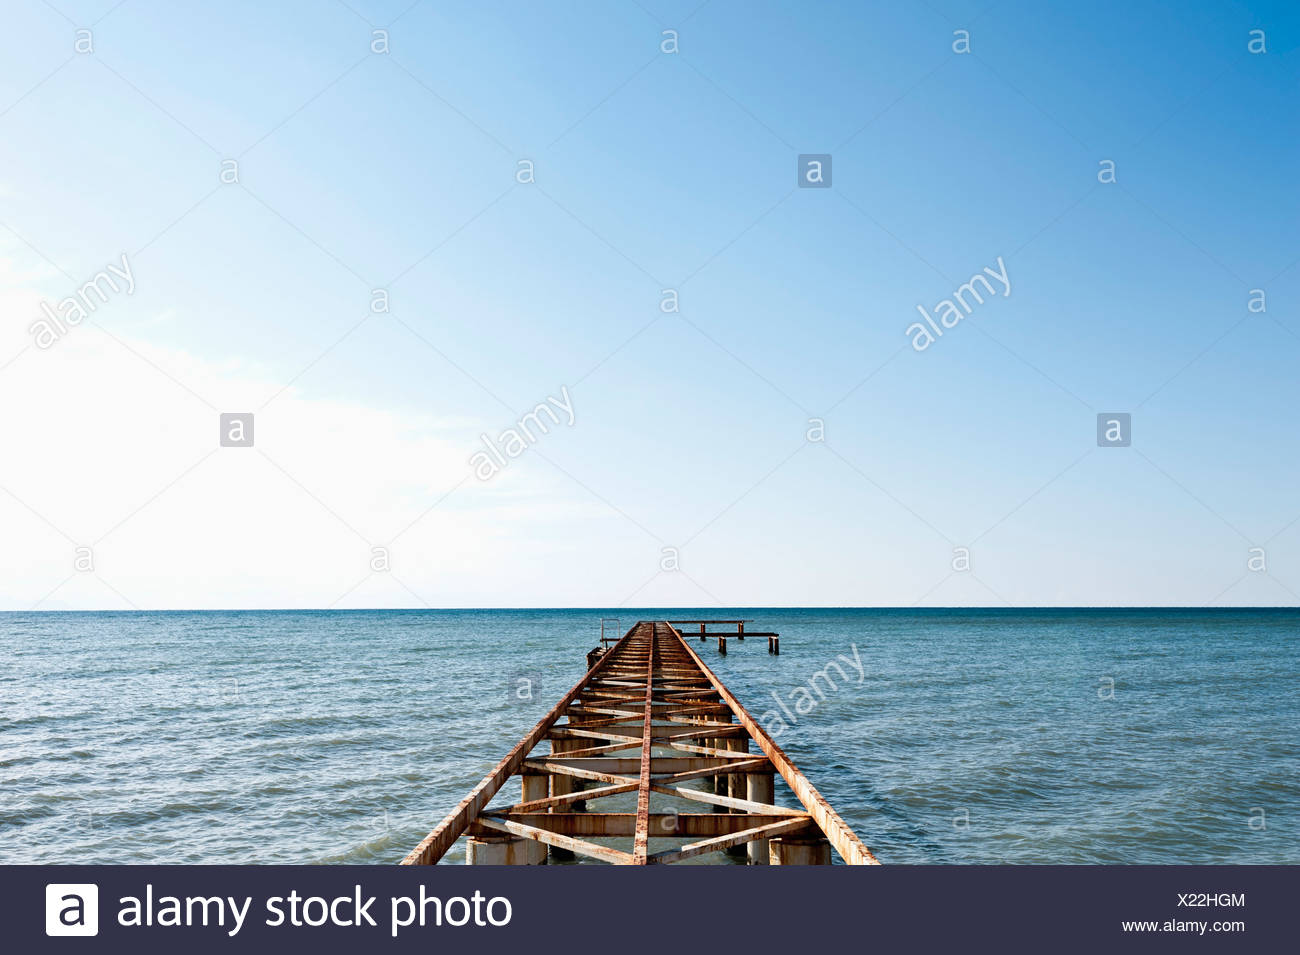 Turkey, Belek, View of rusty boat landing stage near sea - Stock Image